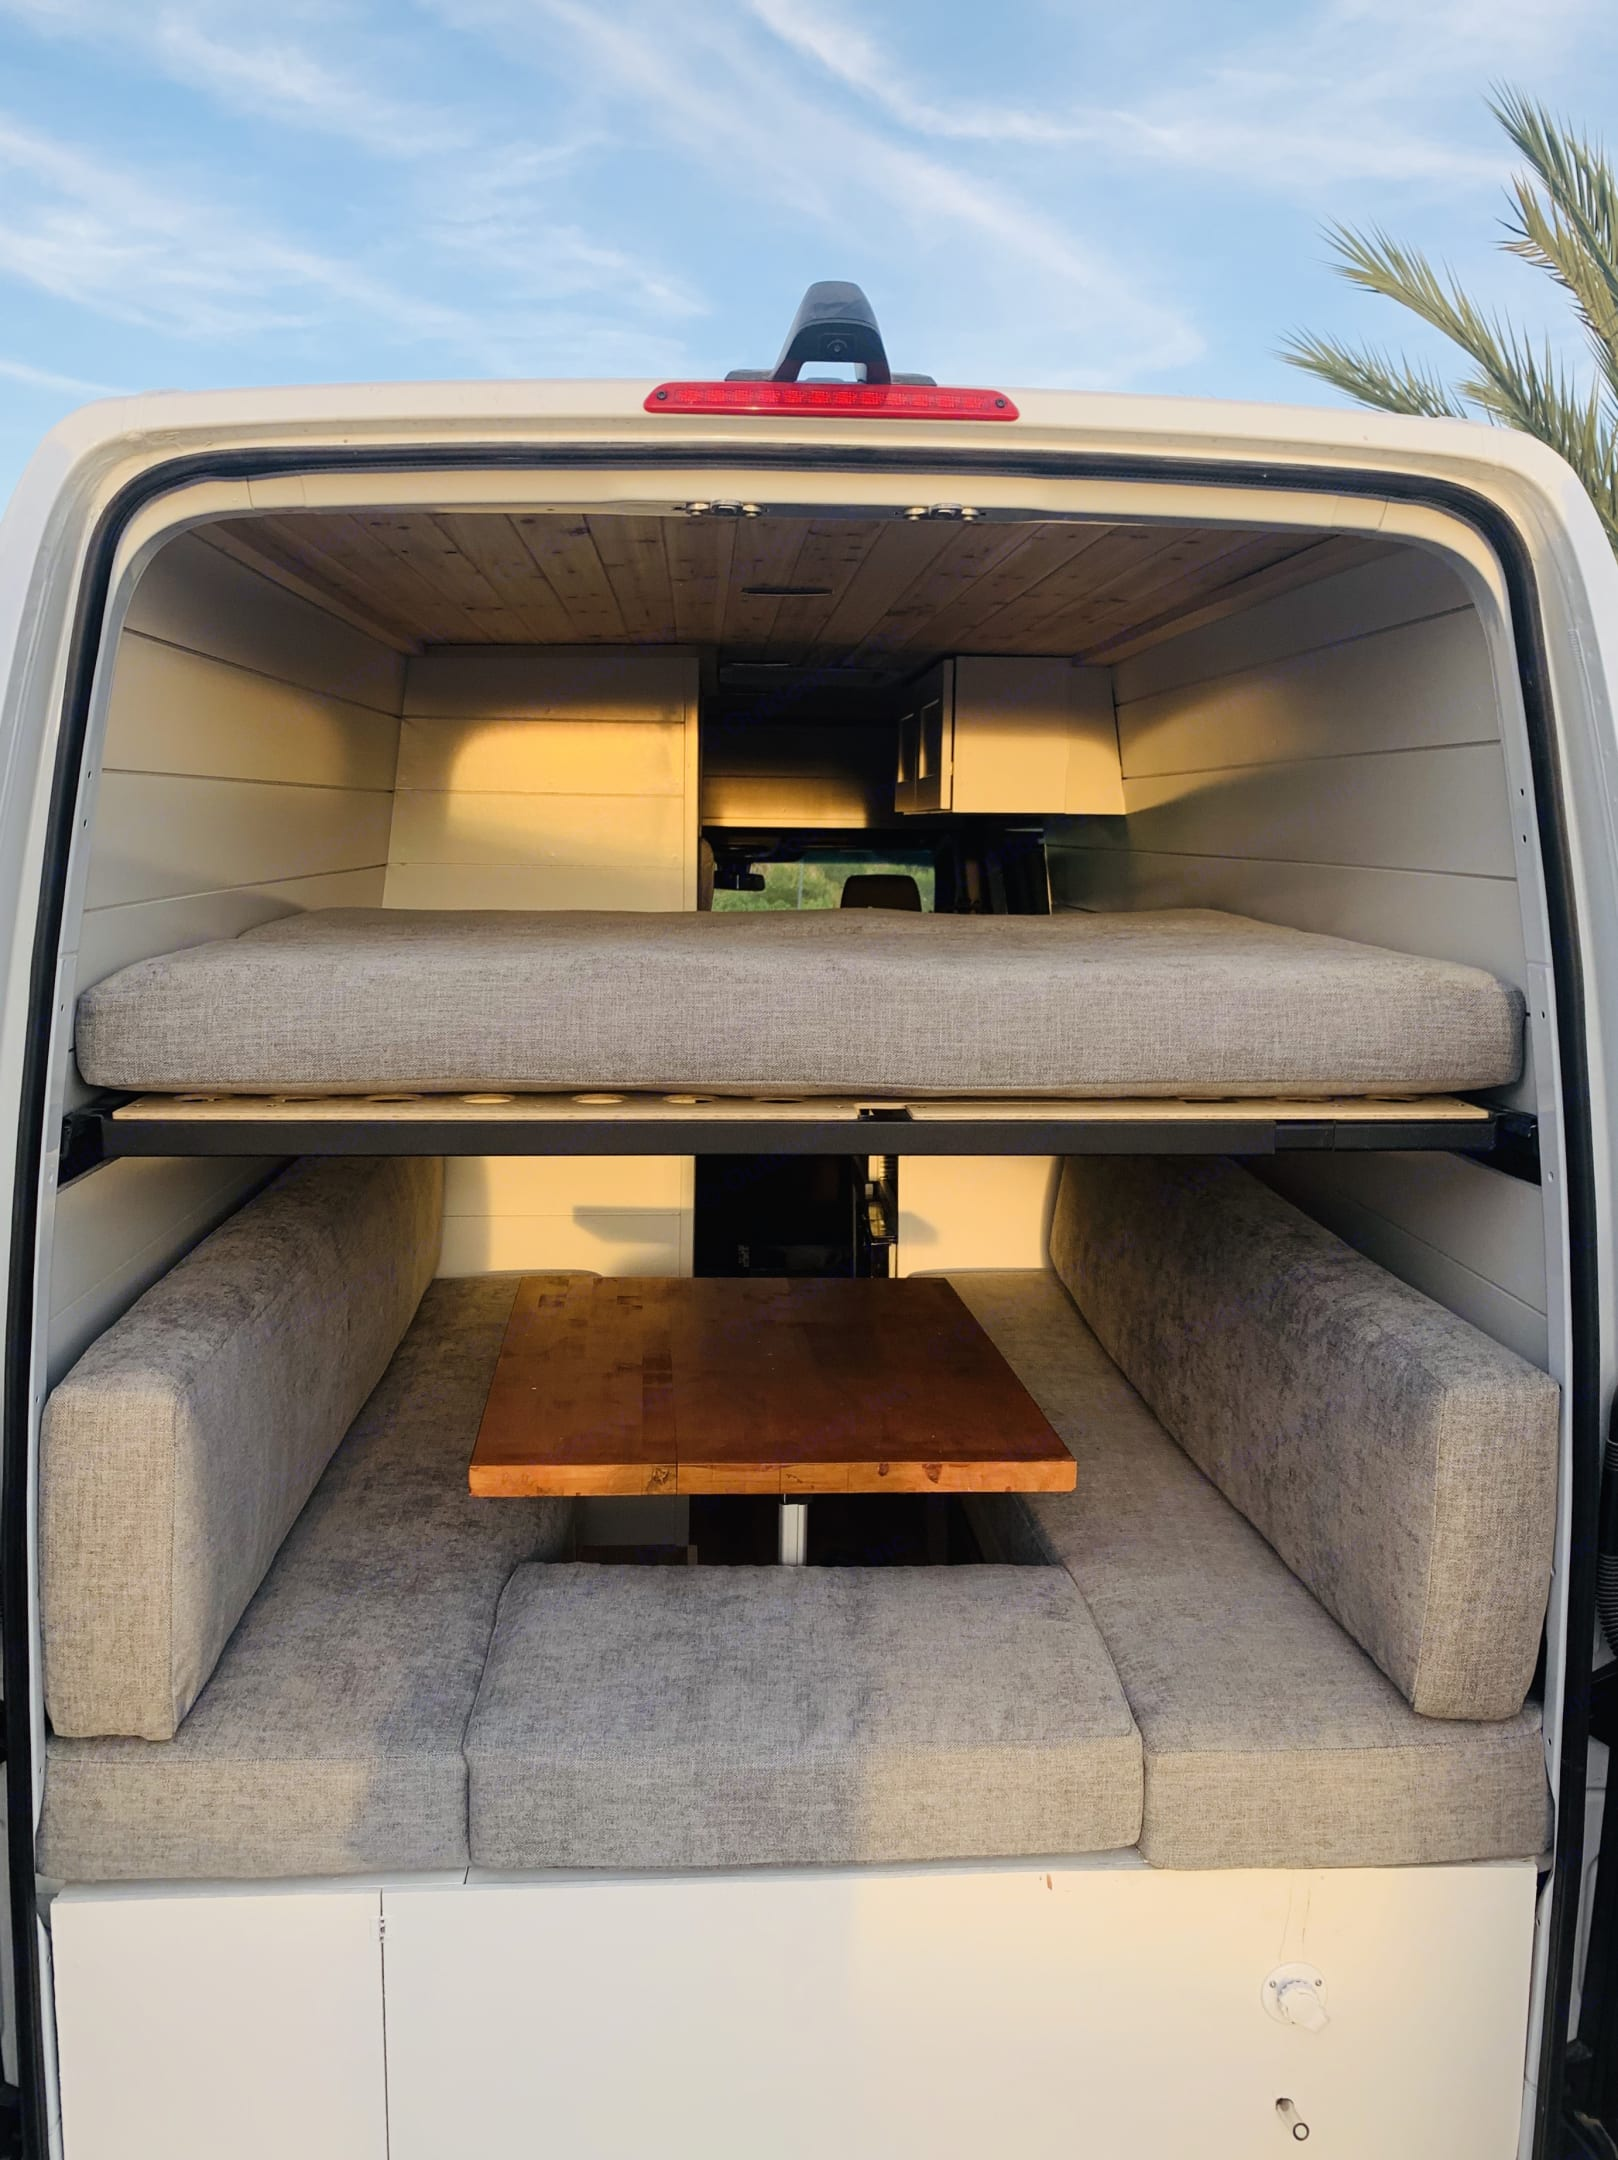 Bunk Bed is removable to open up headroom for dinette. Mercedes-Benz Sprinter RV Motorhome Campervan 2020